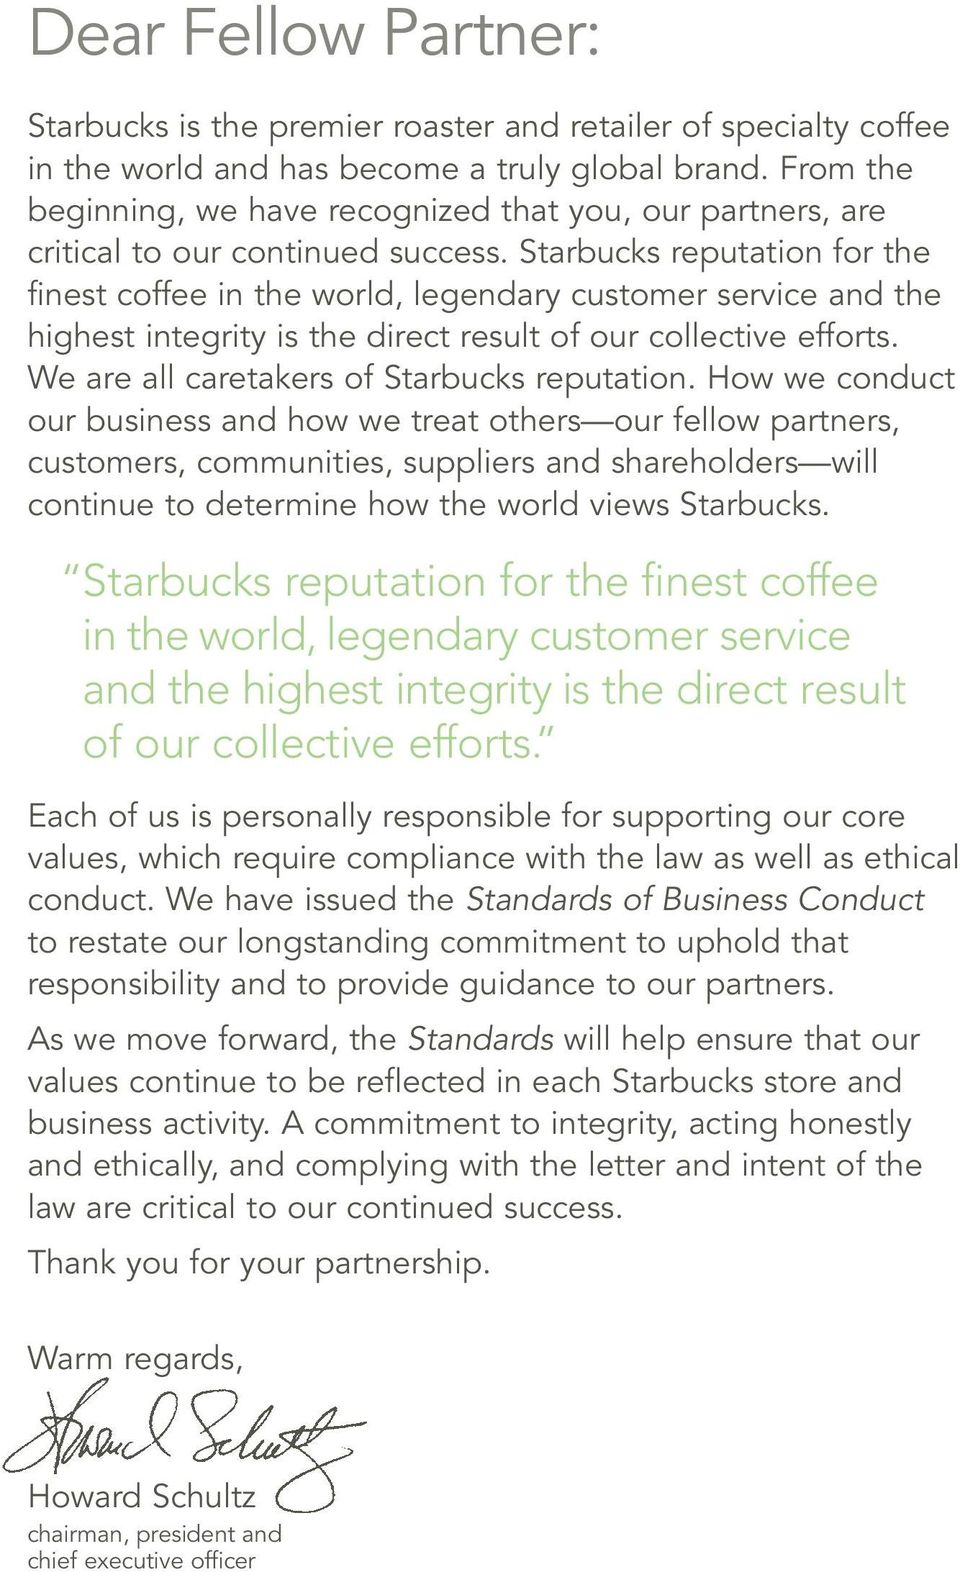 Starbucks reputation for the finest coffee in the world, legendary customer service and the highest integrity is the direct result of our collective efforts.